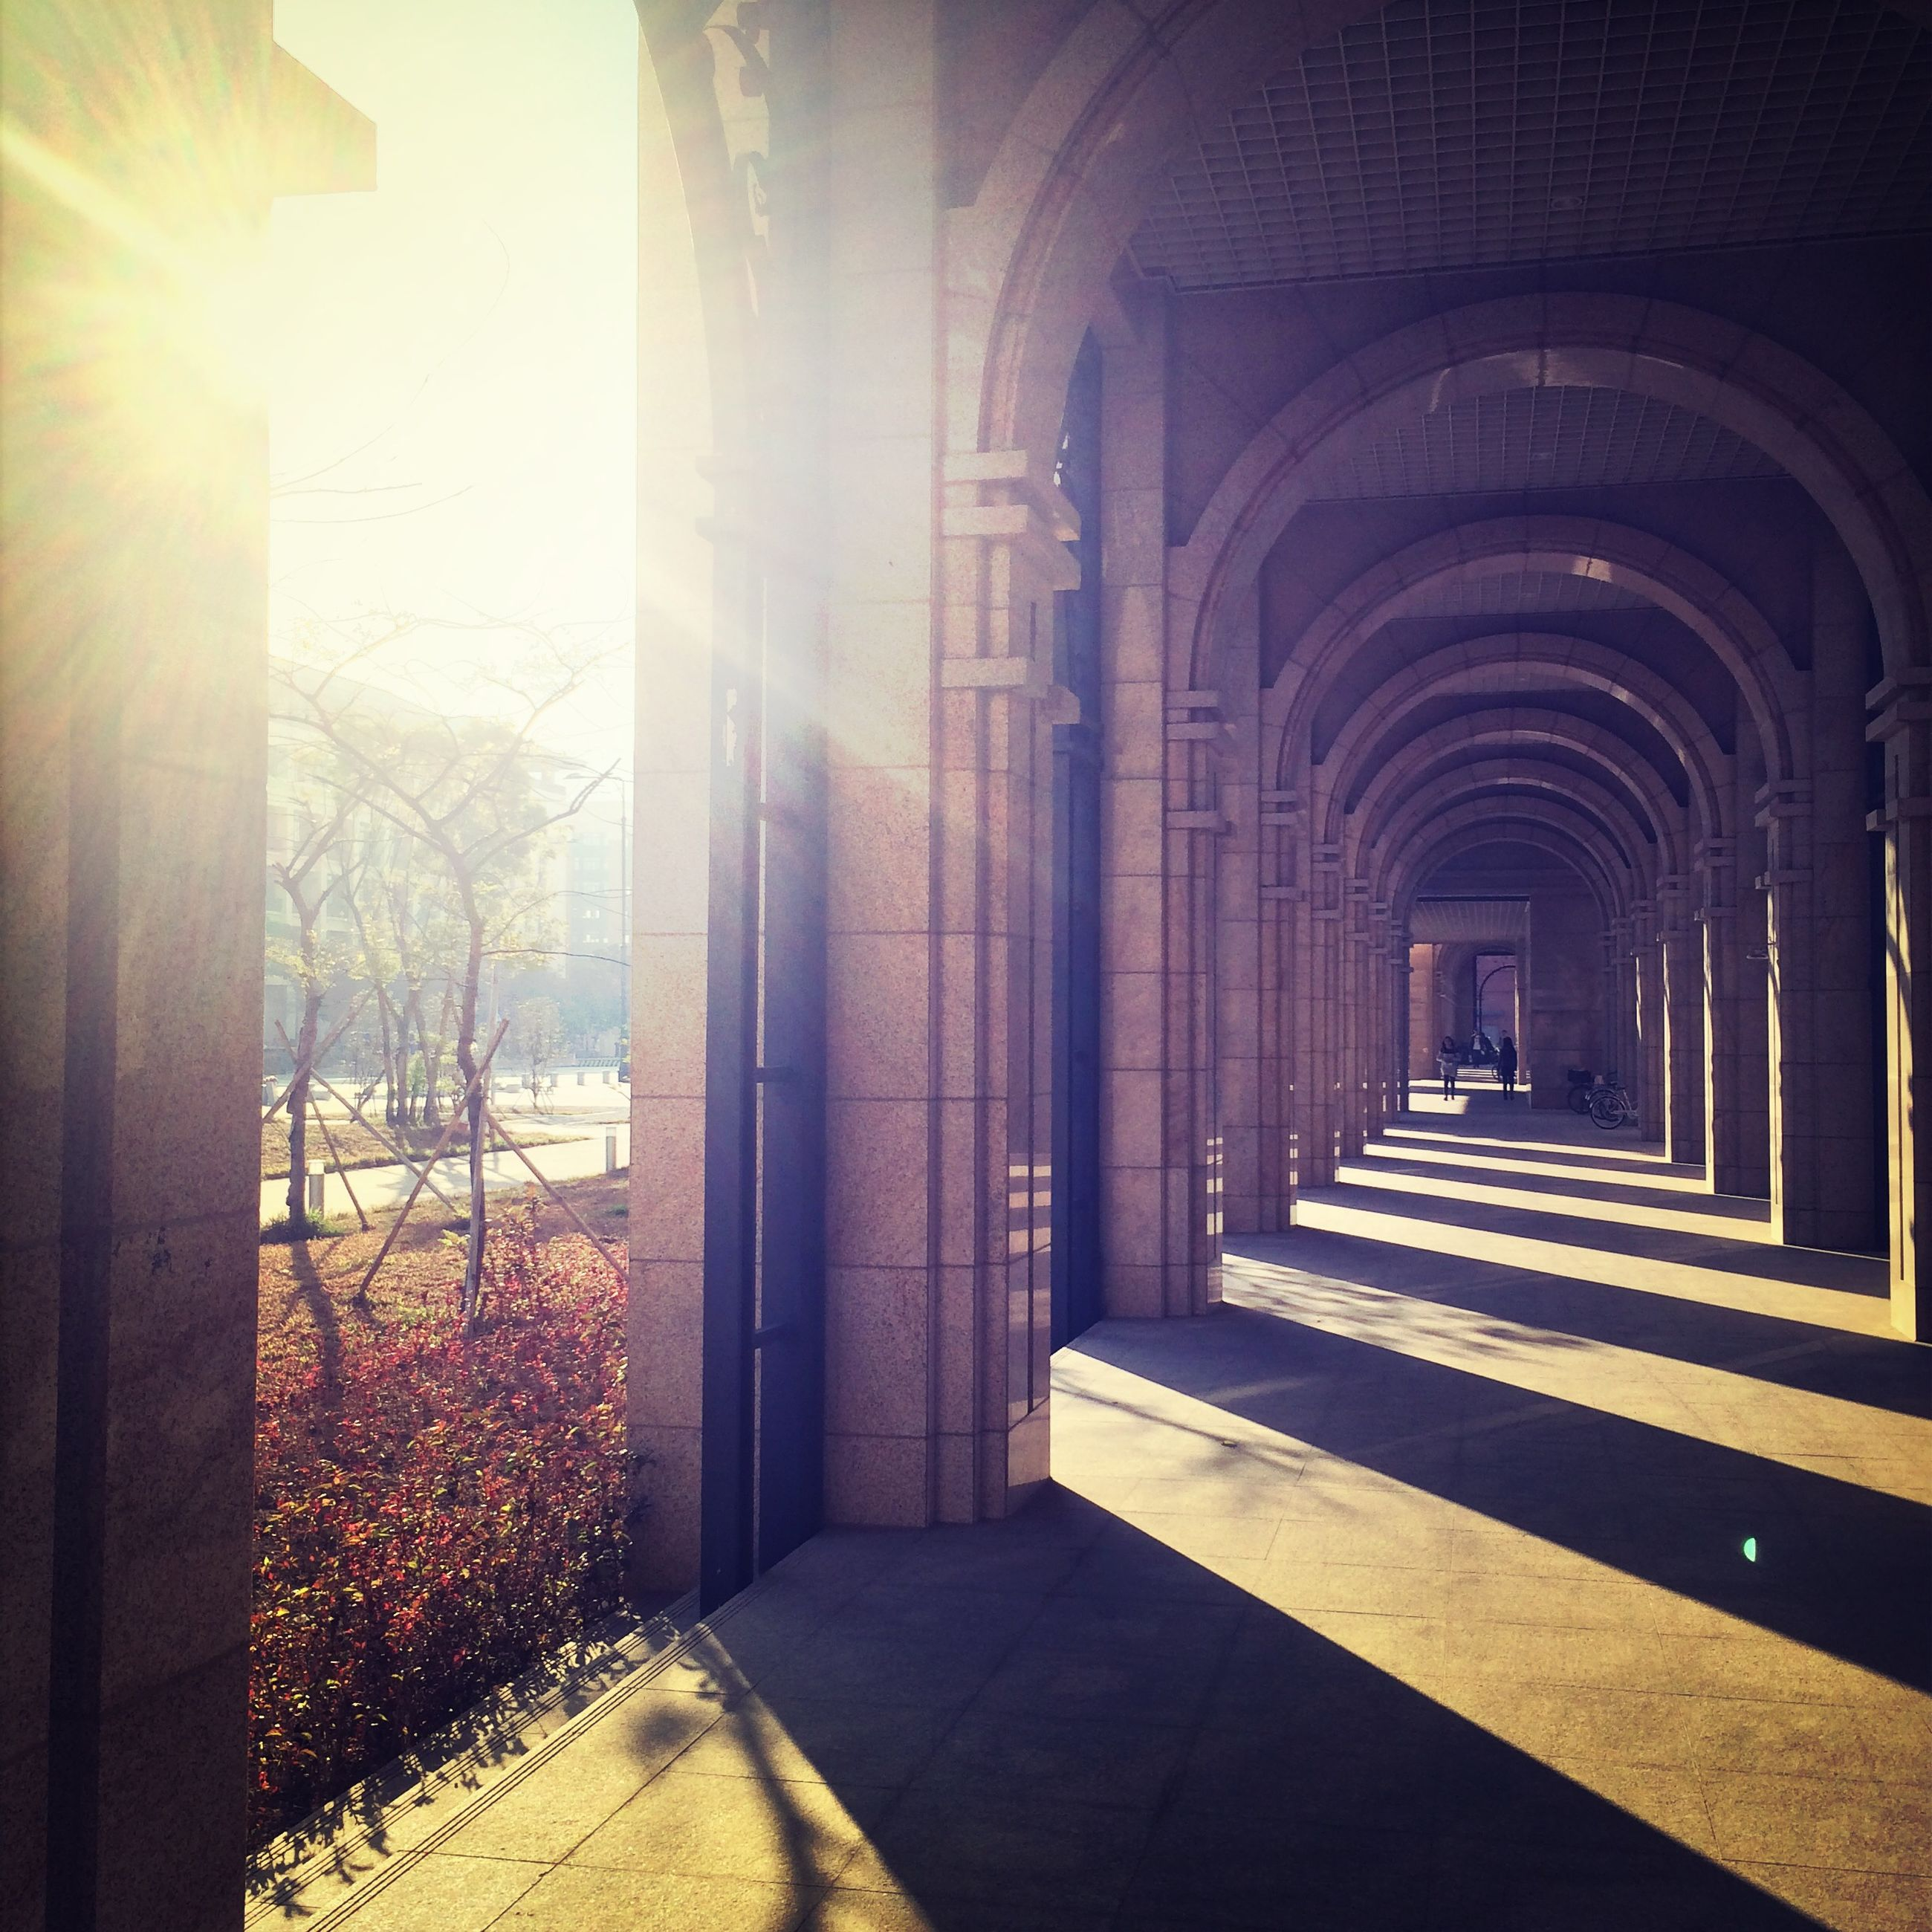 architecture, built structure, indoors, arch, architectural column, the way forward, corridor, sunlight, column, building exterior, in a row, colonnade, day, diminishing perspective, tiled floor, building, entrance, history, religion, shadow